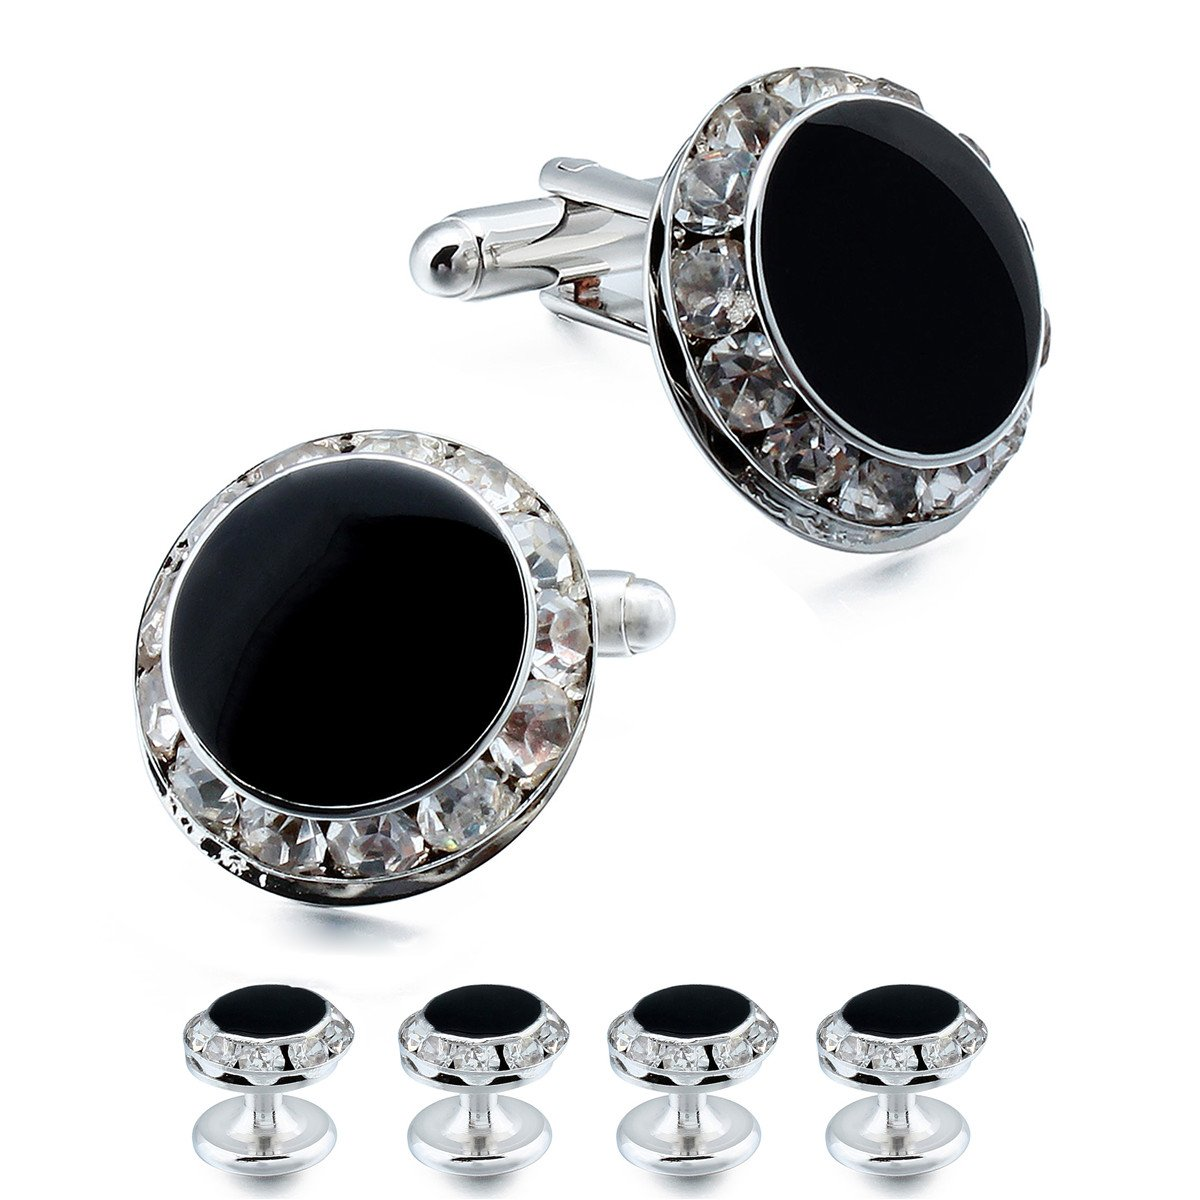 HAWSON Crystal Cuff Links and Studs Set for Mens Tuxedo Shrit Wedding Accessories 40019